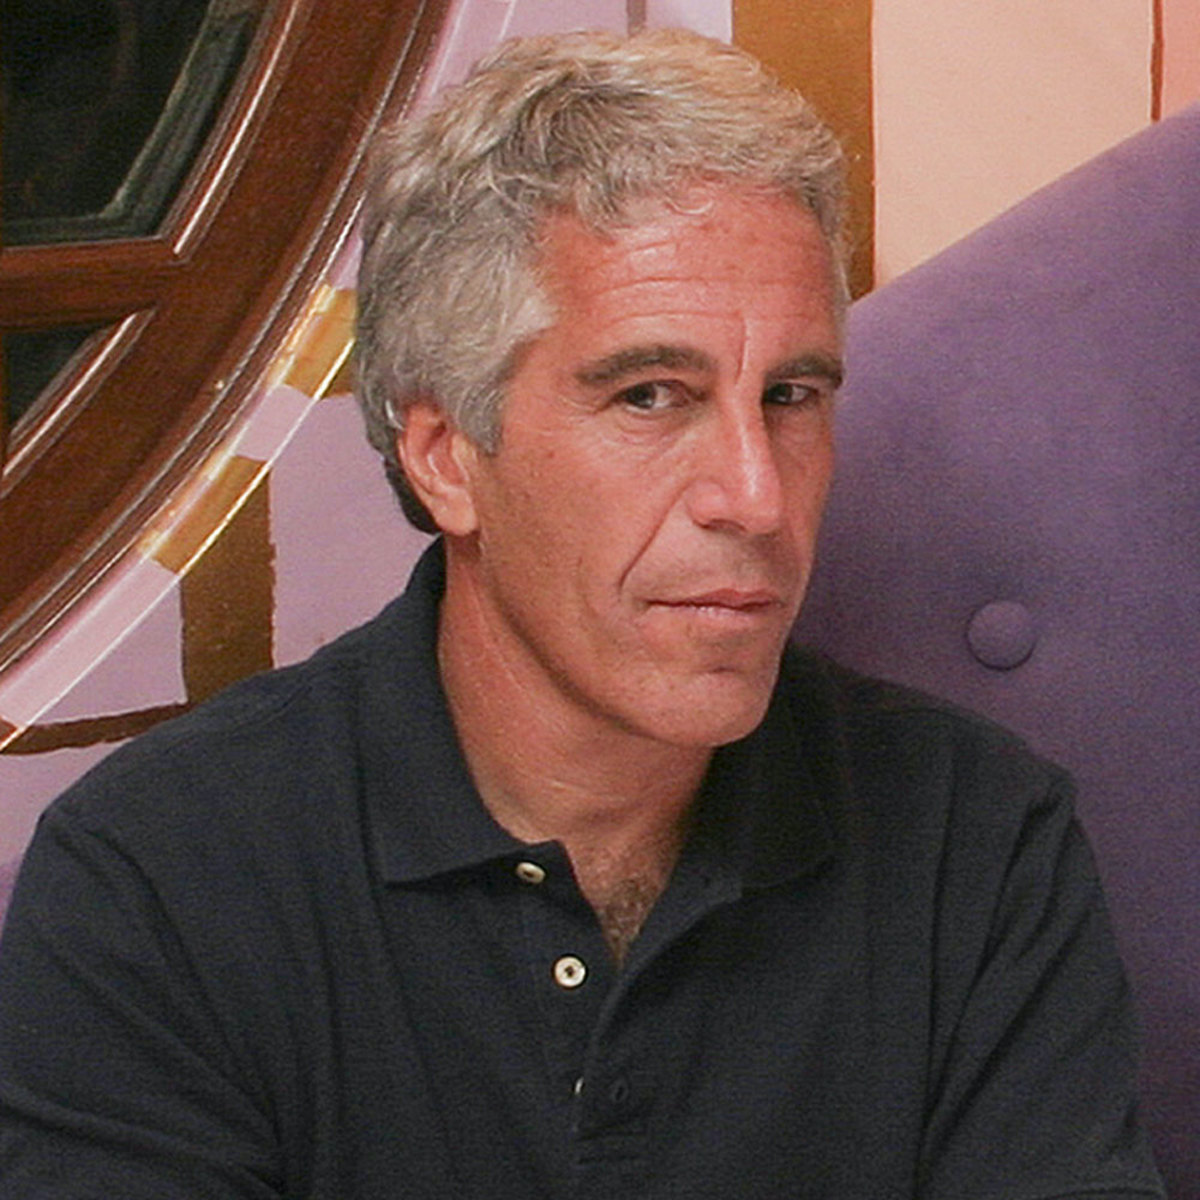 We can't get enough of Jeffrey Epstein conspiracy theories. Take a look at our favorite memes that lean into all the best Epstein conspiracy theories.